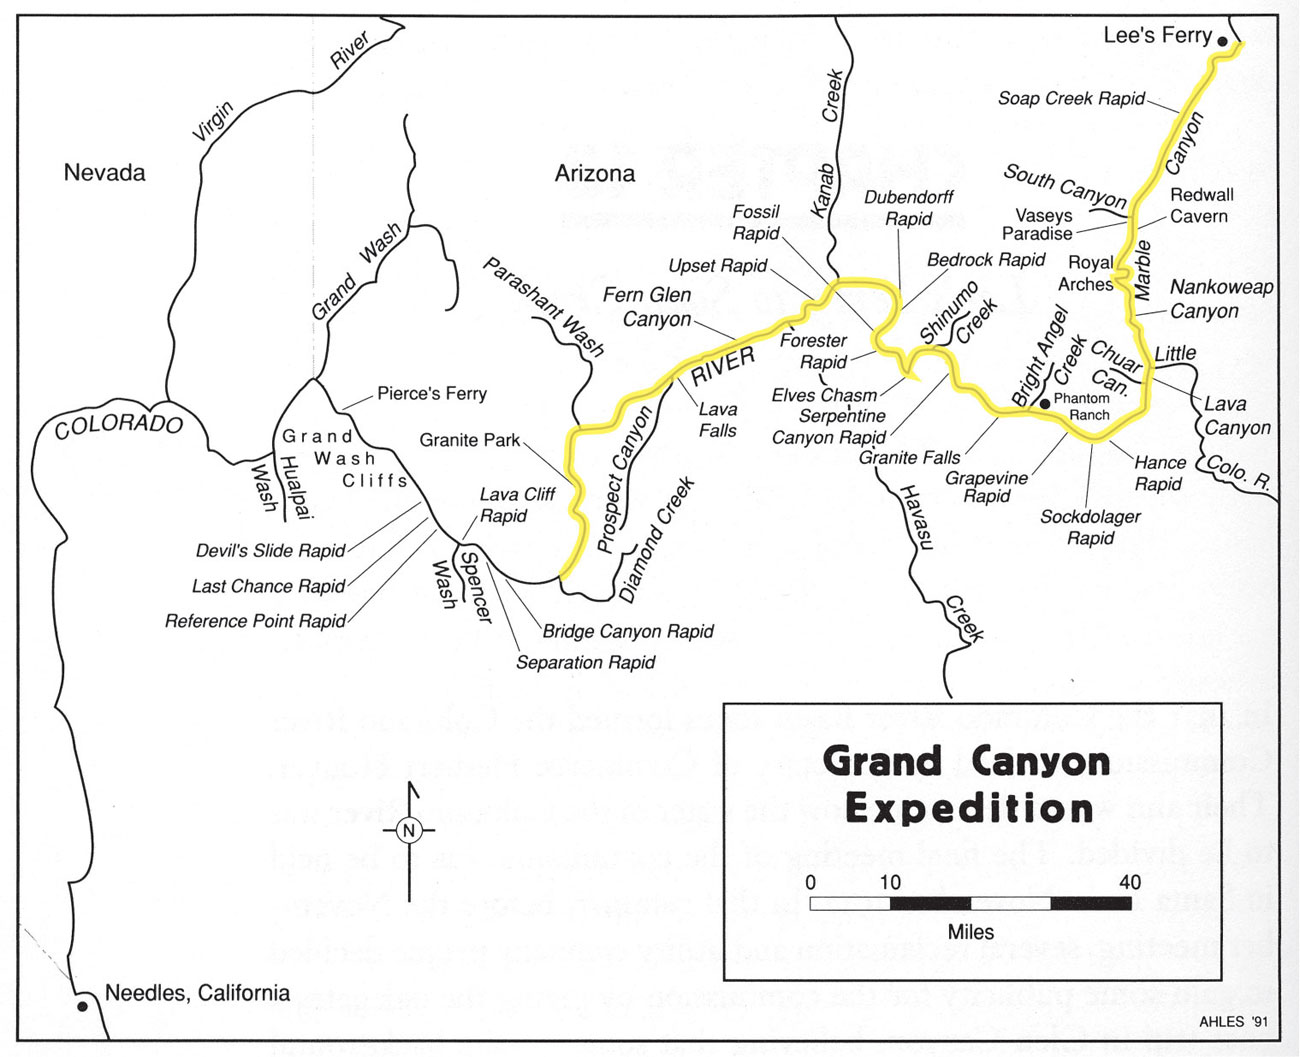 Grand Canyon River Expedition Map - Grand Canyon National ... on everglades in us map, new england in us map, miami in us map, phoenix in us map, austin in us map, orlando in us map, statue of liberty in us map, snake river in us map, canadian river in us map, milwaukee in us map, south dakota in us map, oklahoma city in us map, great salt lake in us map, guam in us map, painted desert in us map, sierra nevada mountains in us map, south carolina in us map, new york in us map, rio grande in us map, sonoran desert in us map,